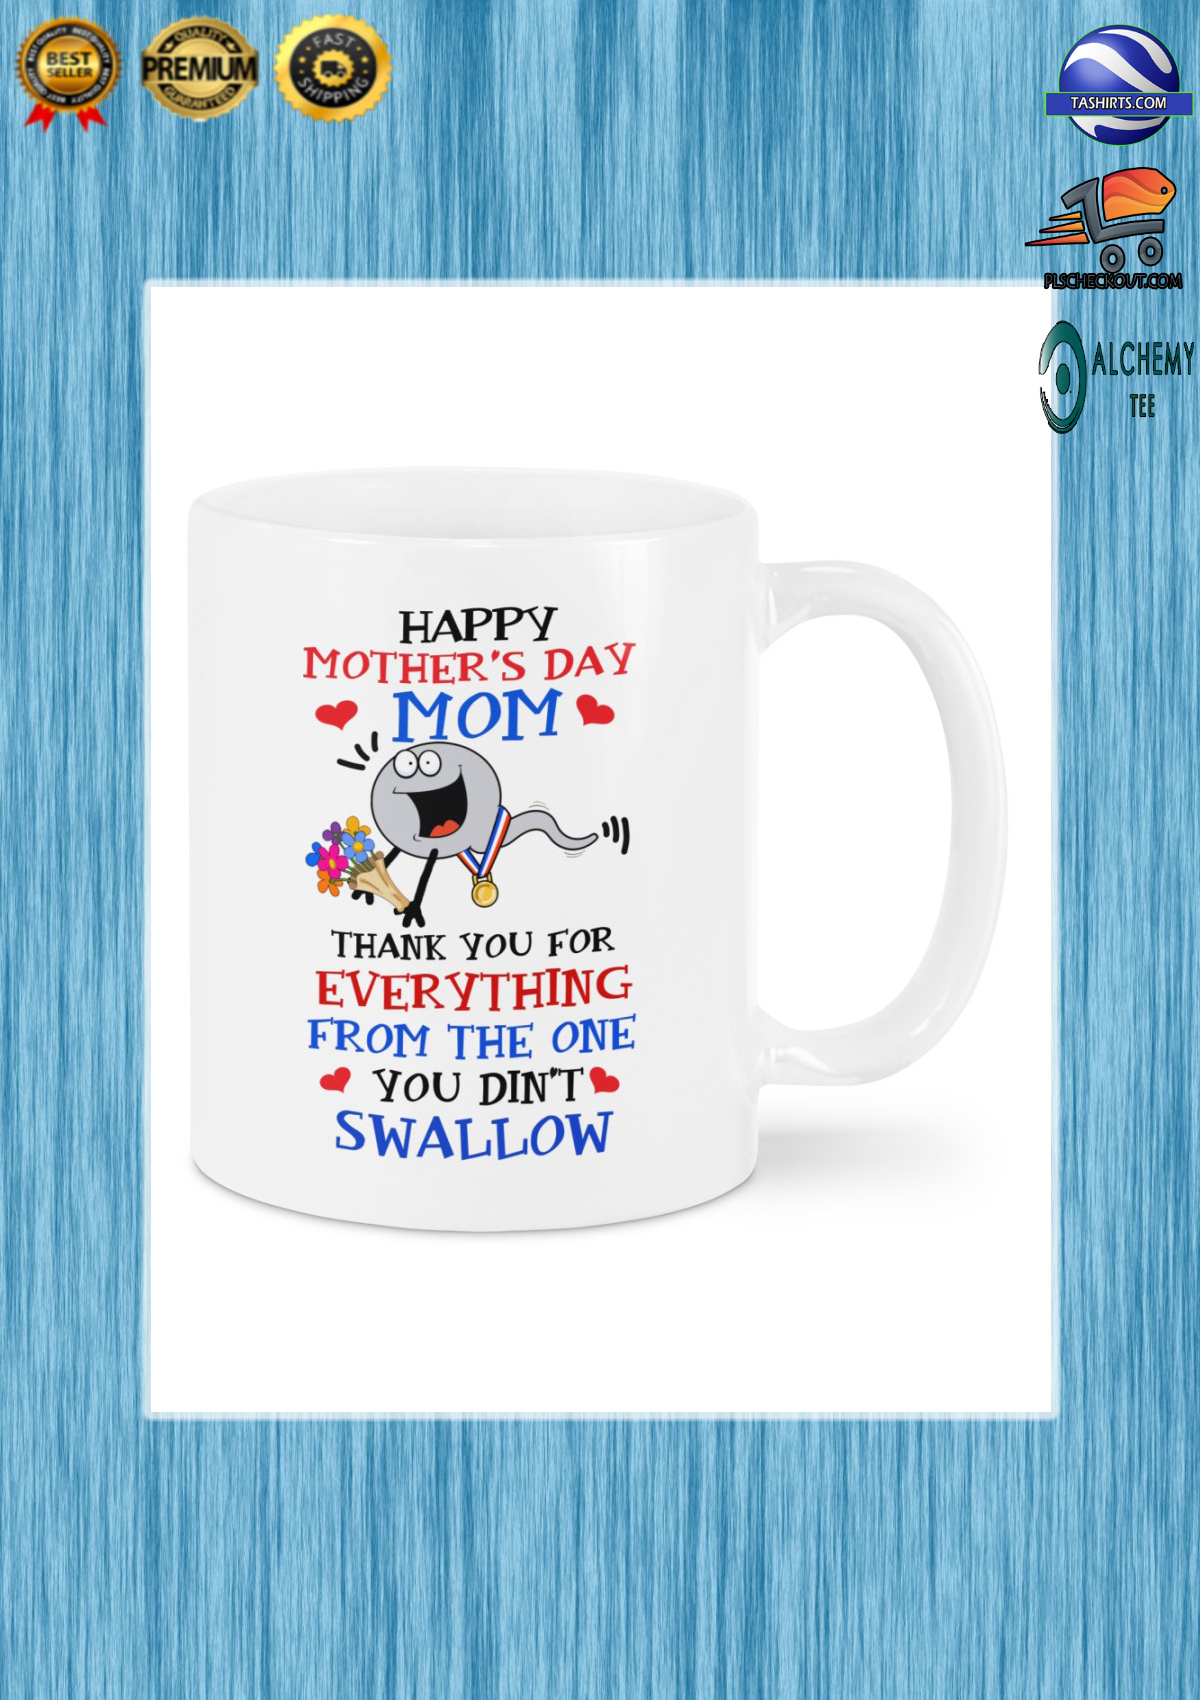 Happy mother's day mom thank you for everything from the one you didn't swallow mug